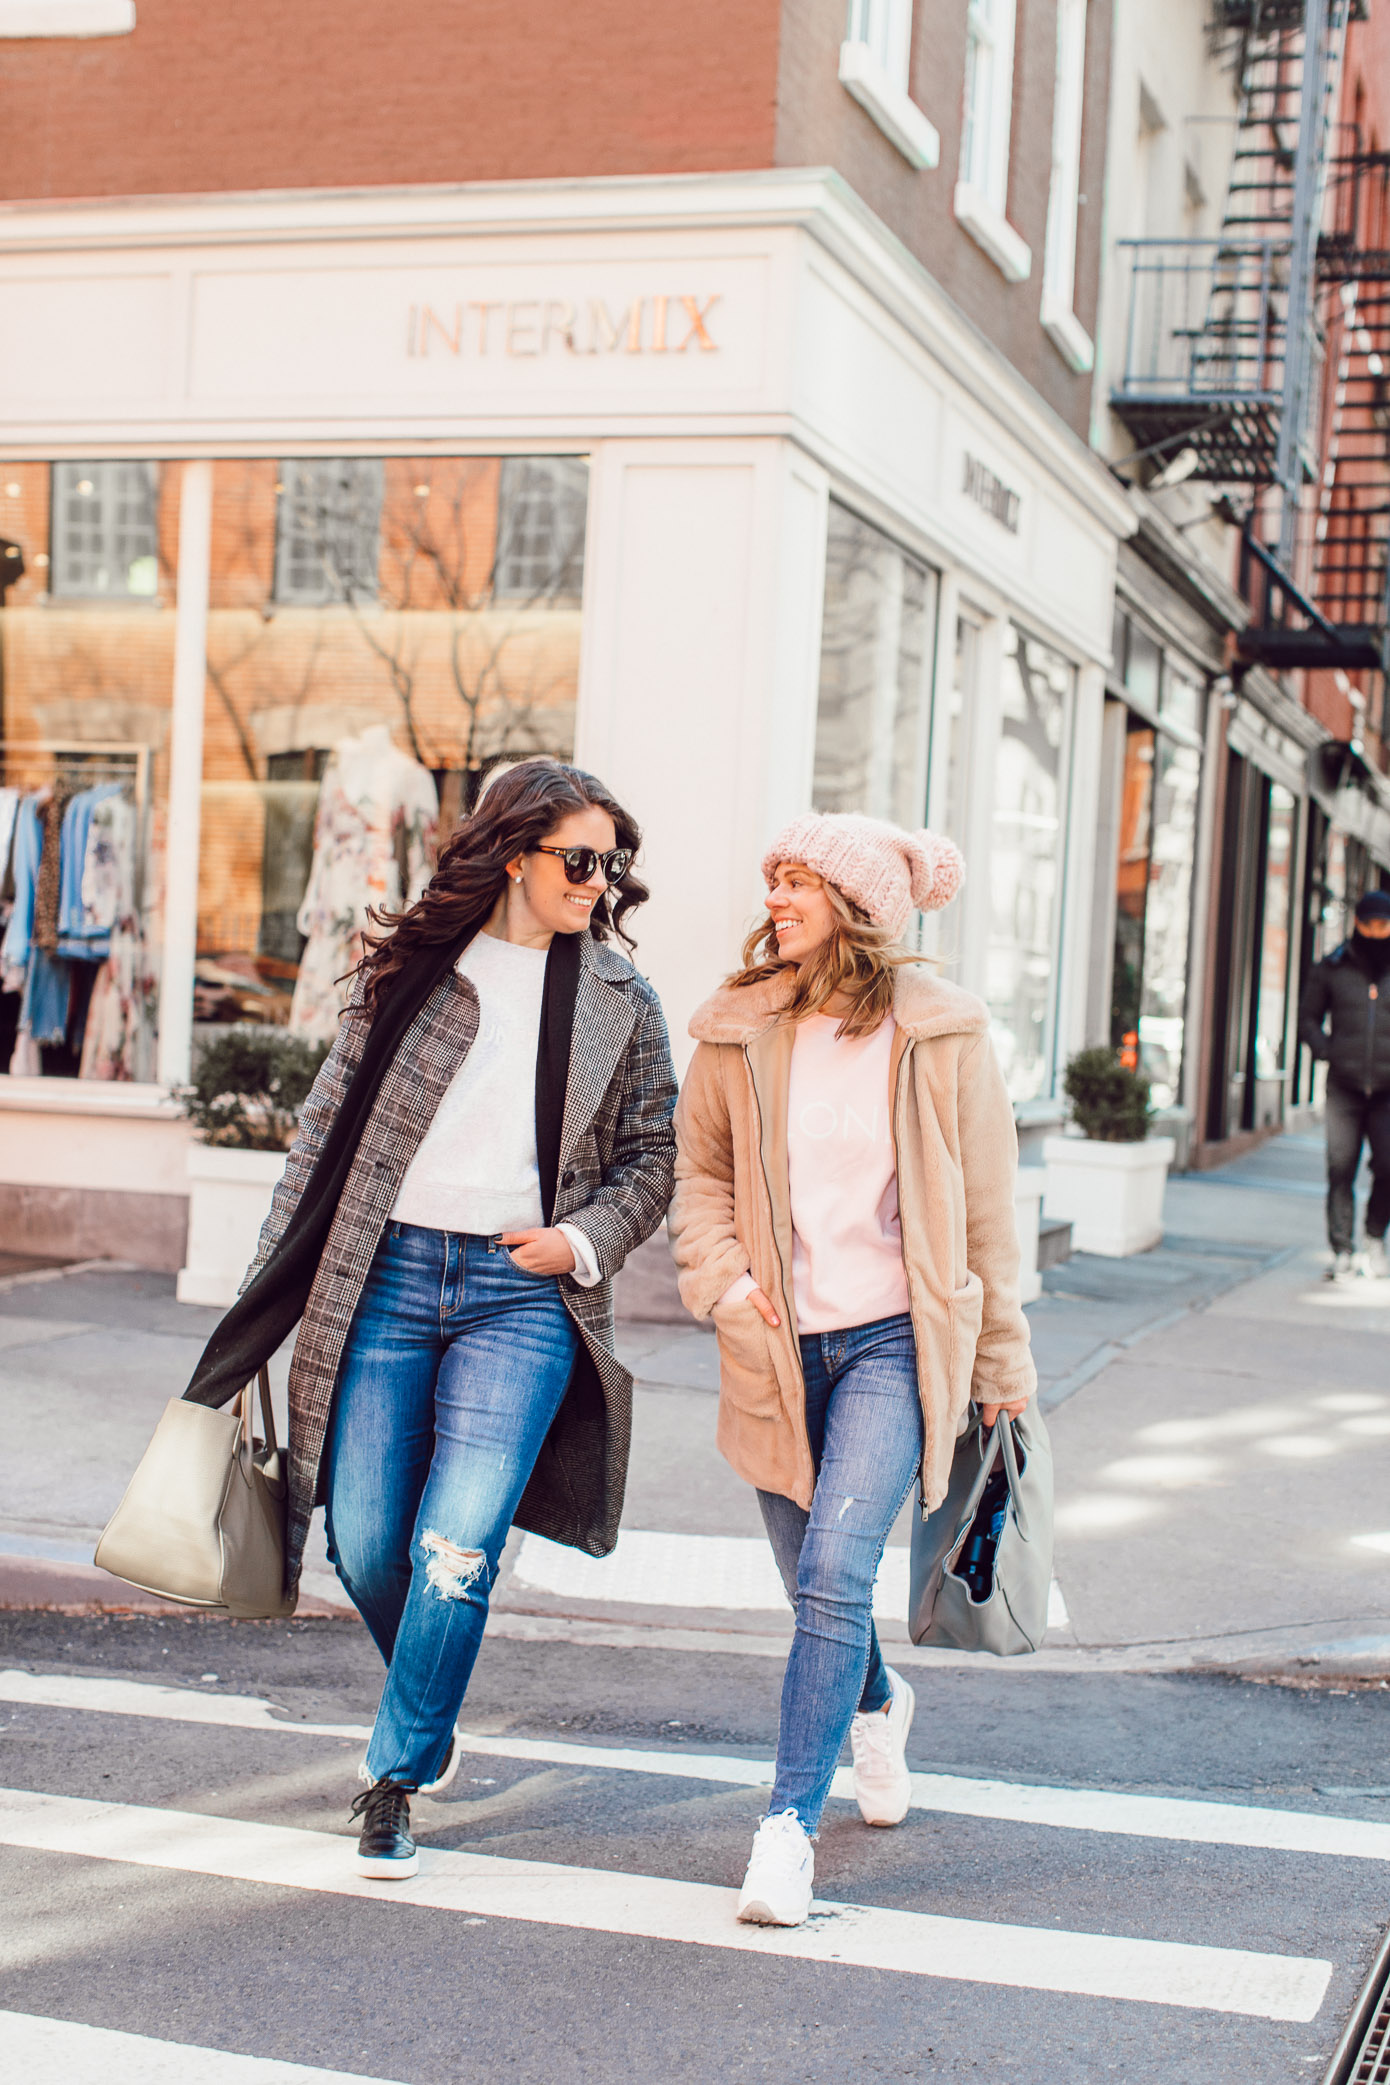 Best Friend Sweatshirts, Brunette the Label Sweatshirts | How to Coordinate with Your Best Friend featured on Louella Reese